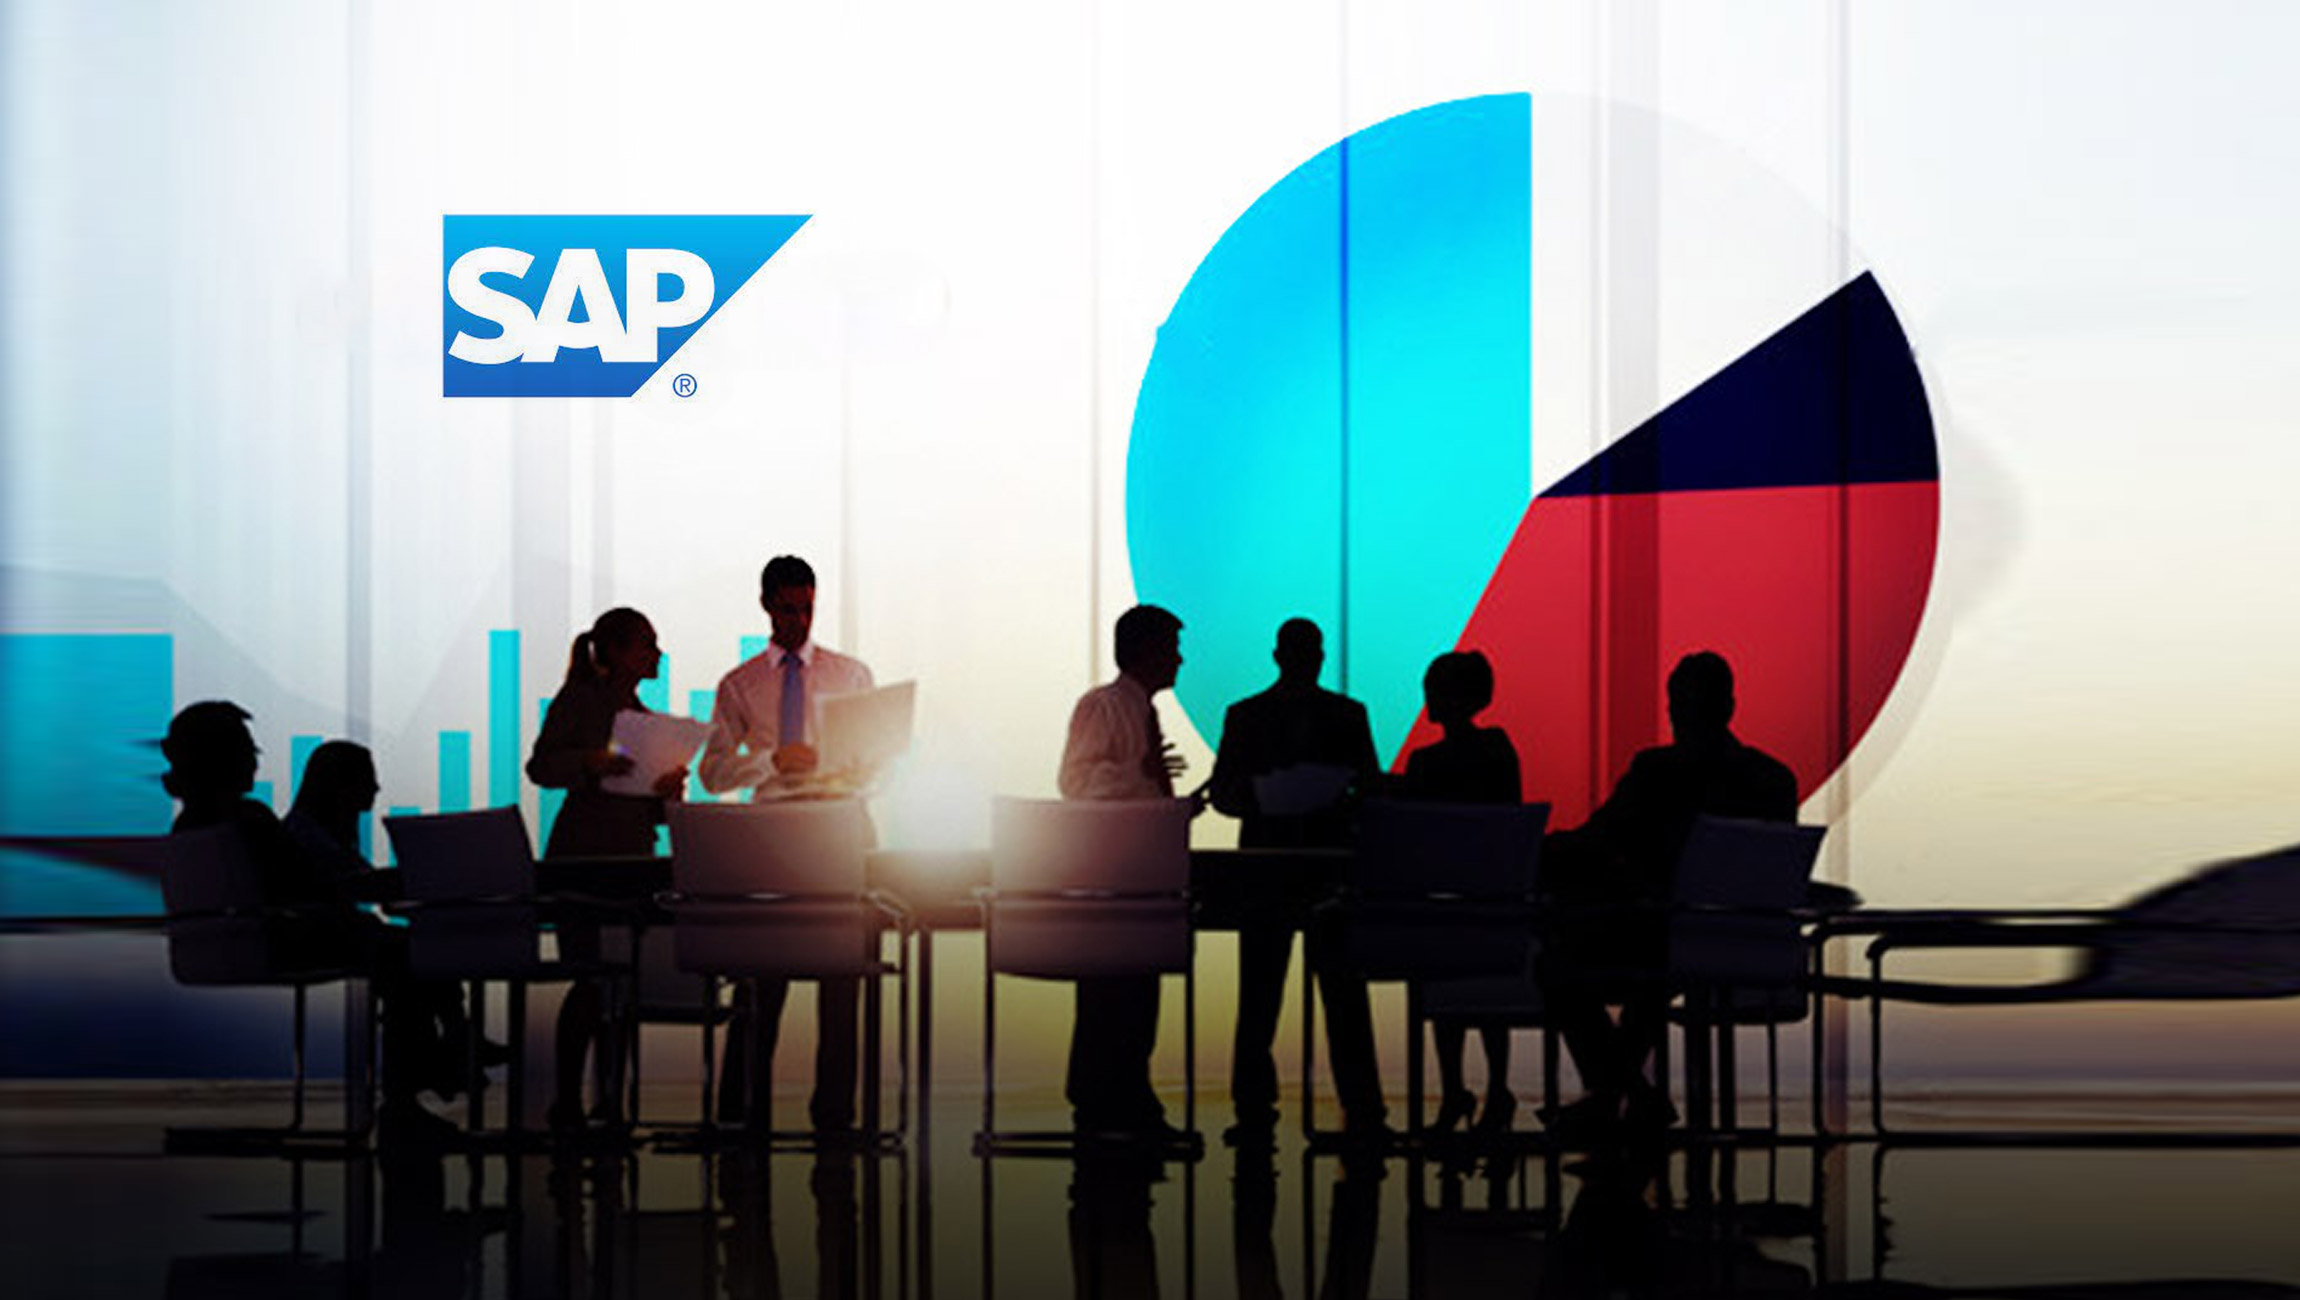 SAP Recognized as a Leader in 2021 Gartner Magic Quadrant for Sales Force Automation